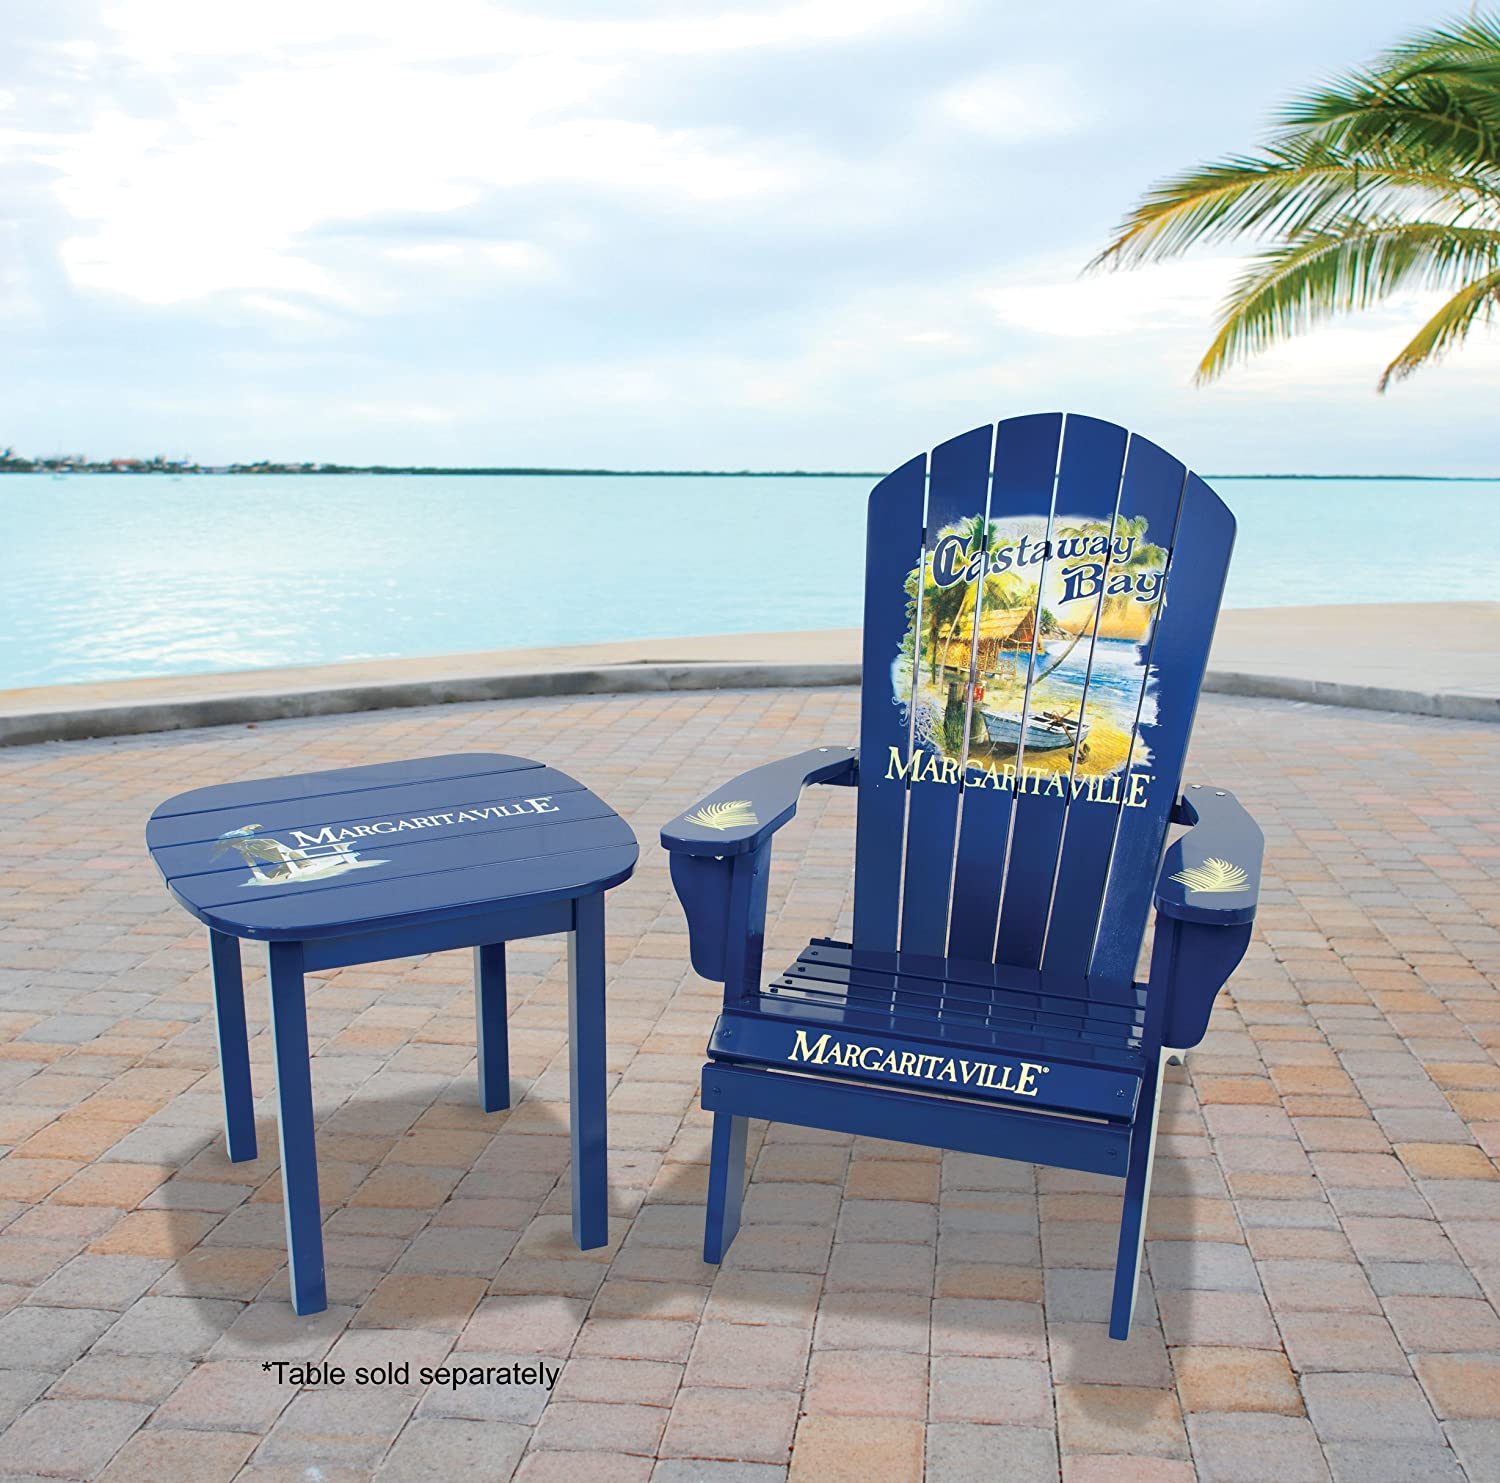 Amazon.com : Margaritaville Outdoor Adirondack Chair, Castaway Bay : Patio,  Lawn U0026 Garden